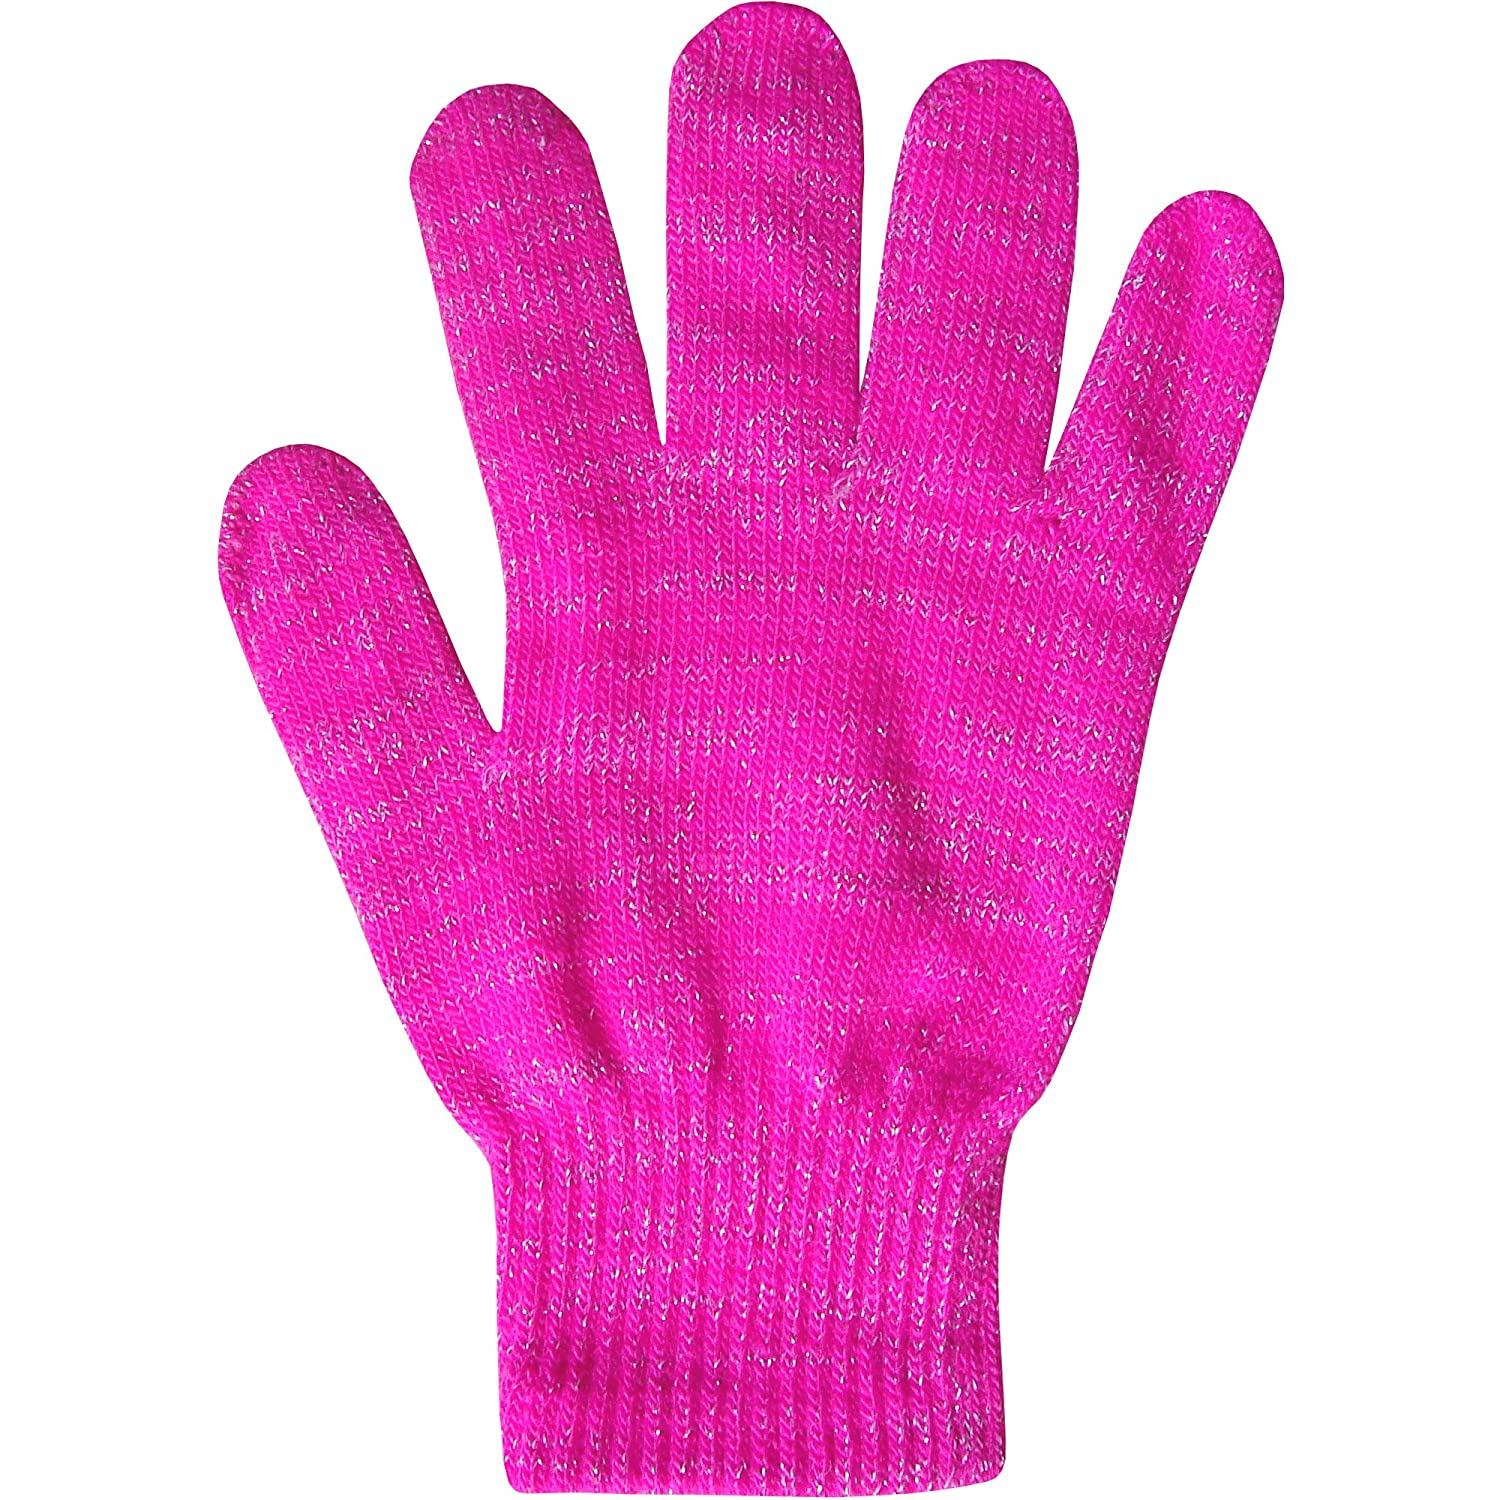 Boy's & Girl's Unisex Fluorescent Super Soft Fine Knit Neon Magic Winter Gloves Neon Pink One Size 8-16 Years